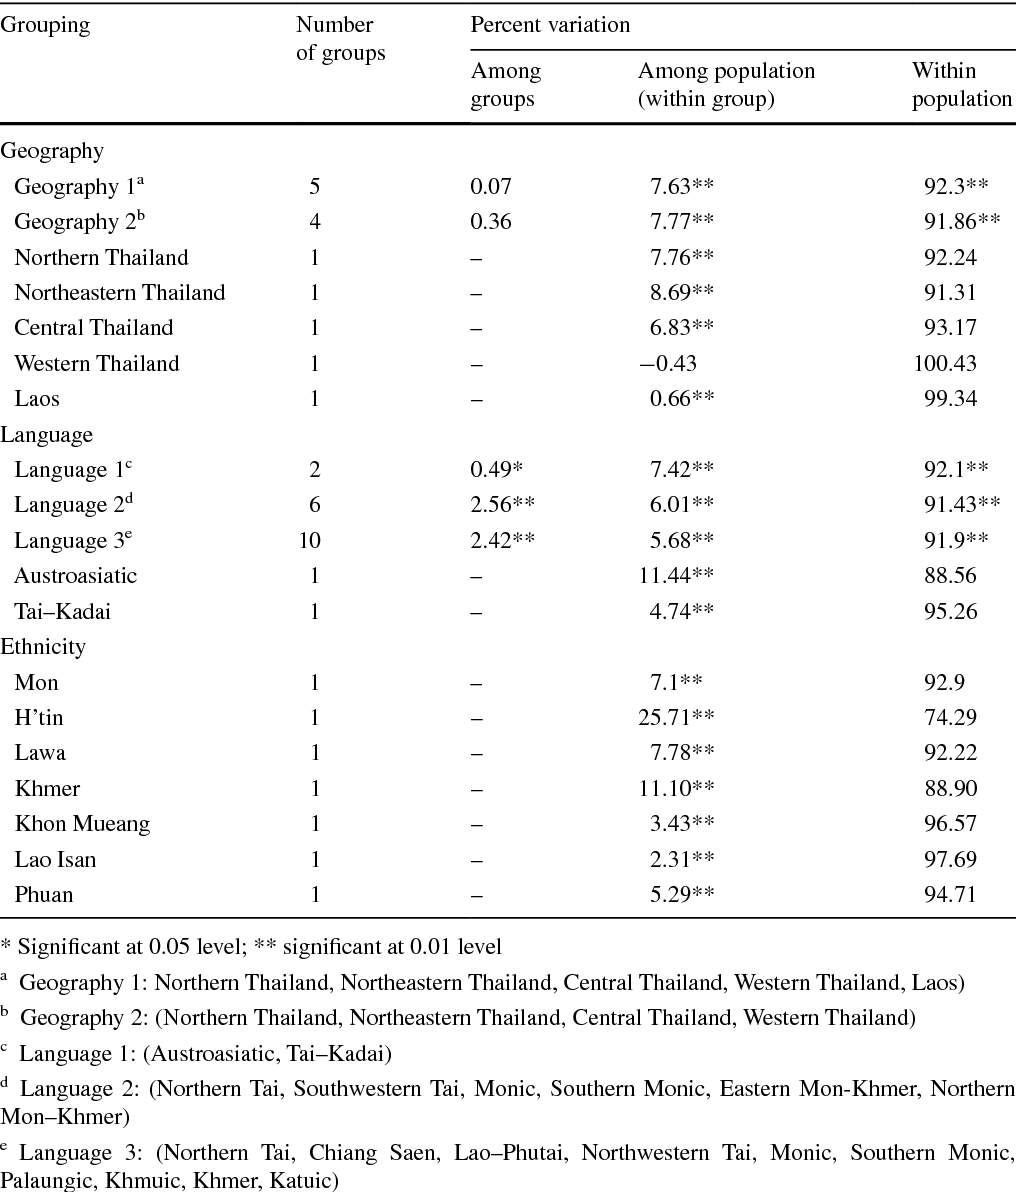 Complete mitochondrial genomes of Thai and Lao populations